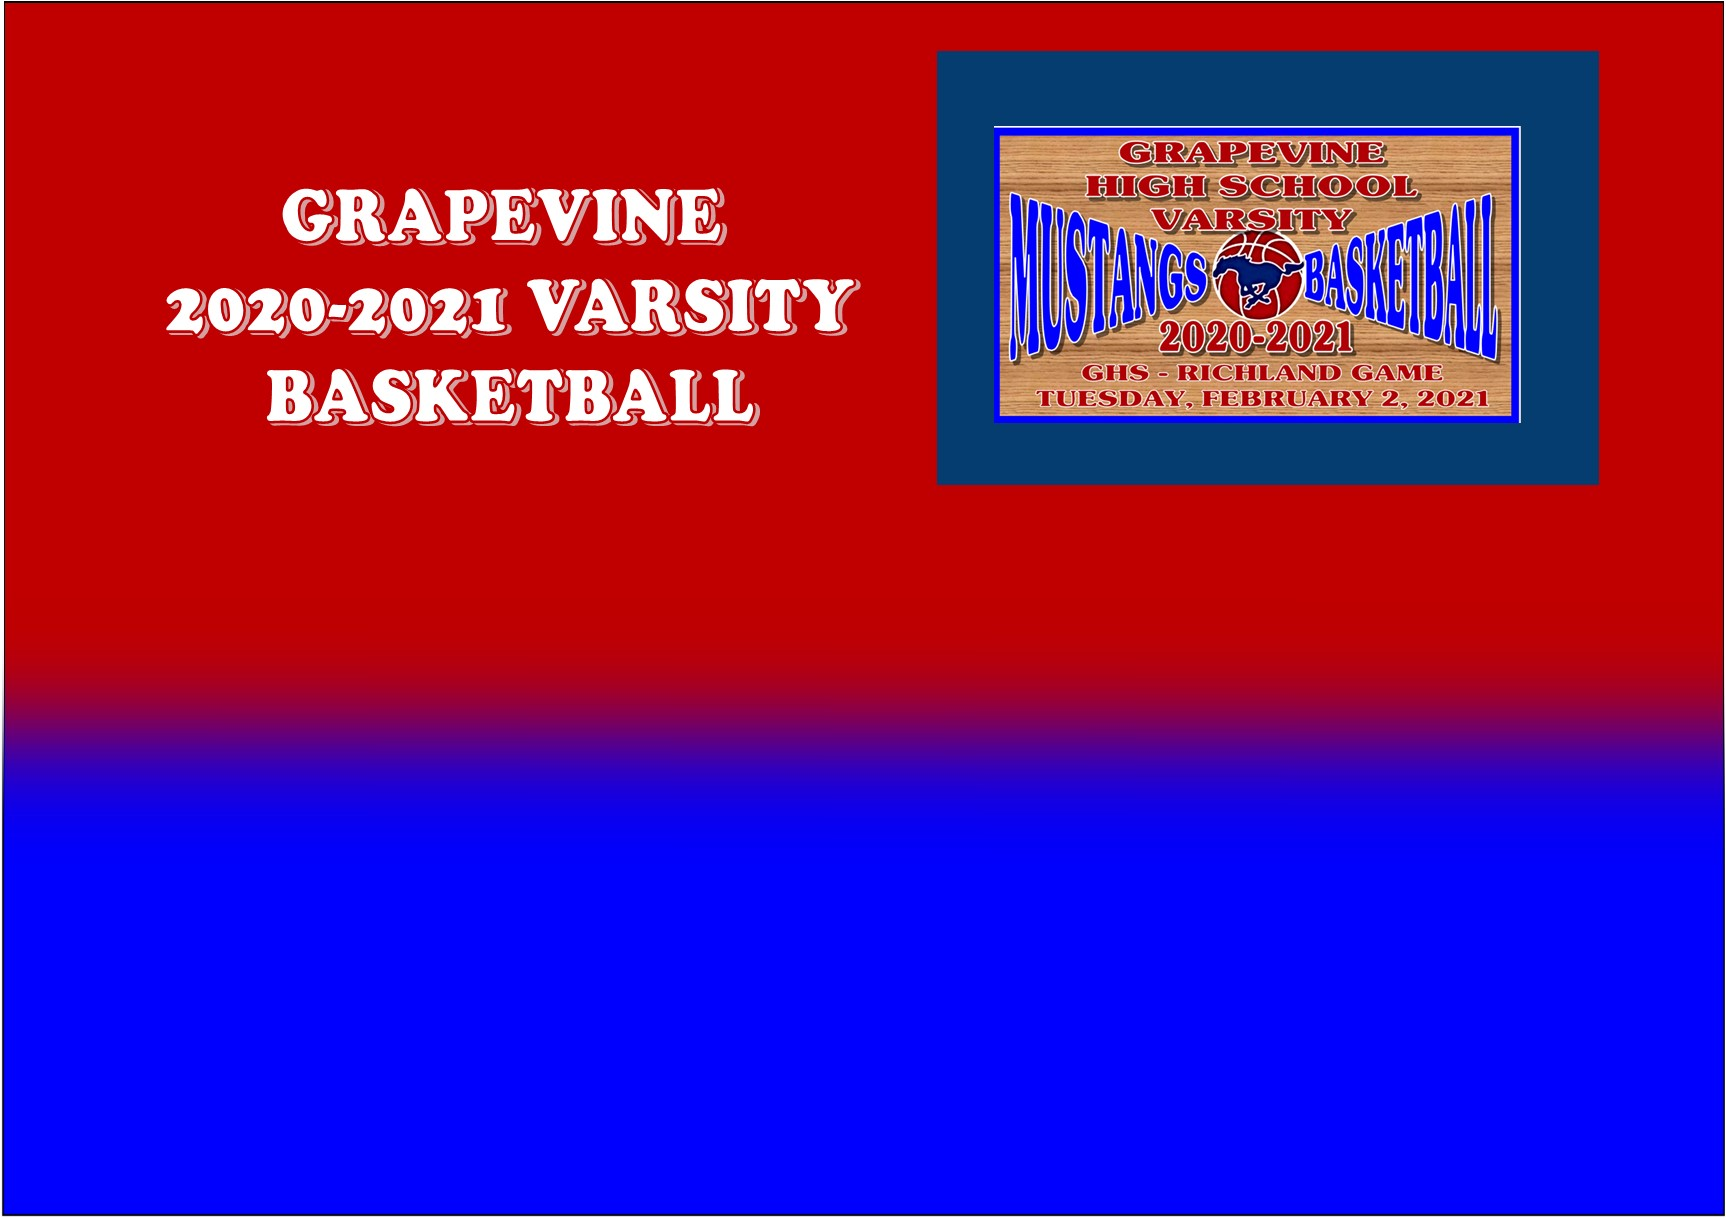 GCISD Basketball: Grapevine Mustangs Fall To 1st Place Richland Royals 42-57